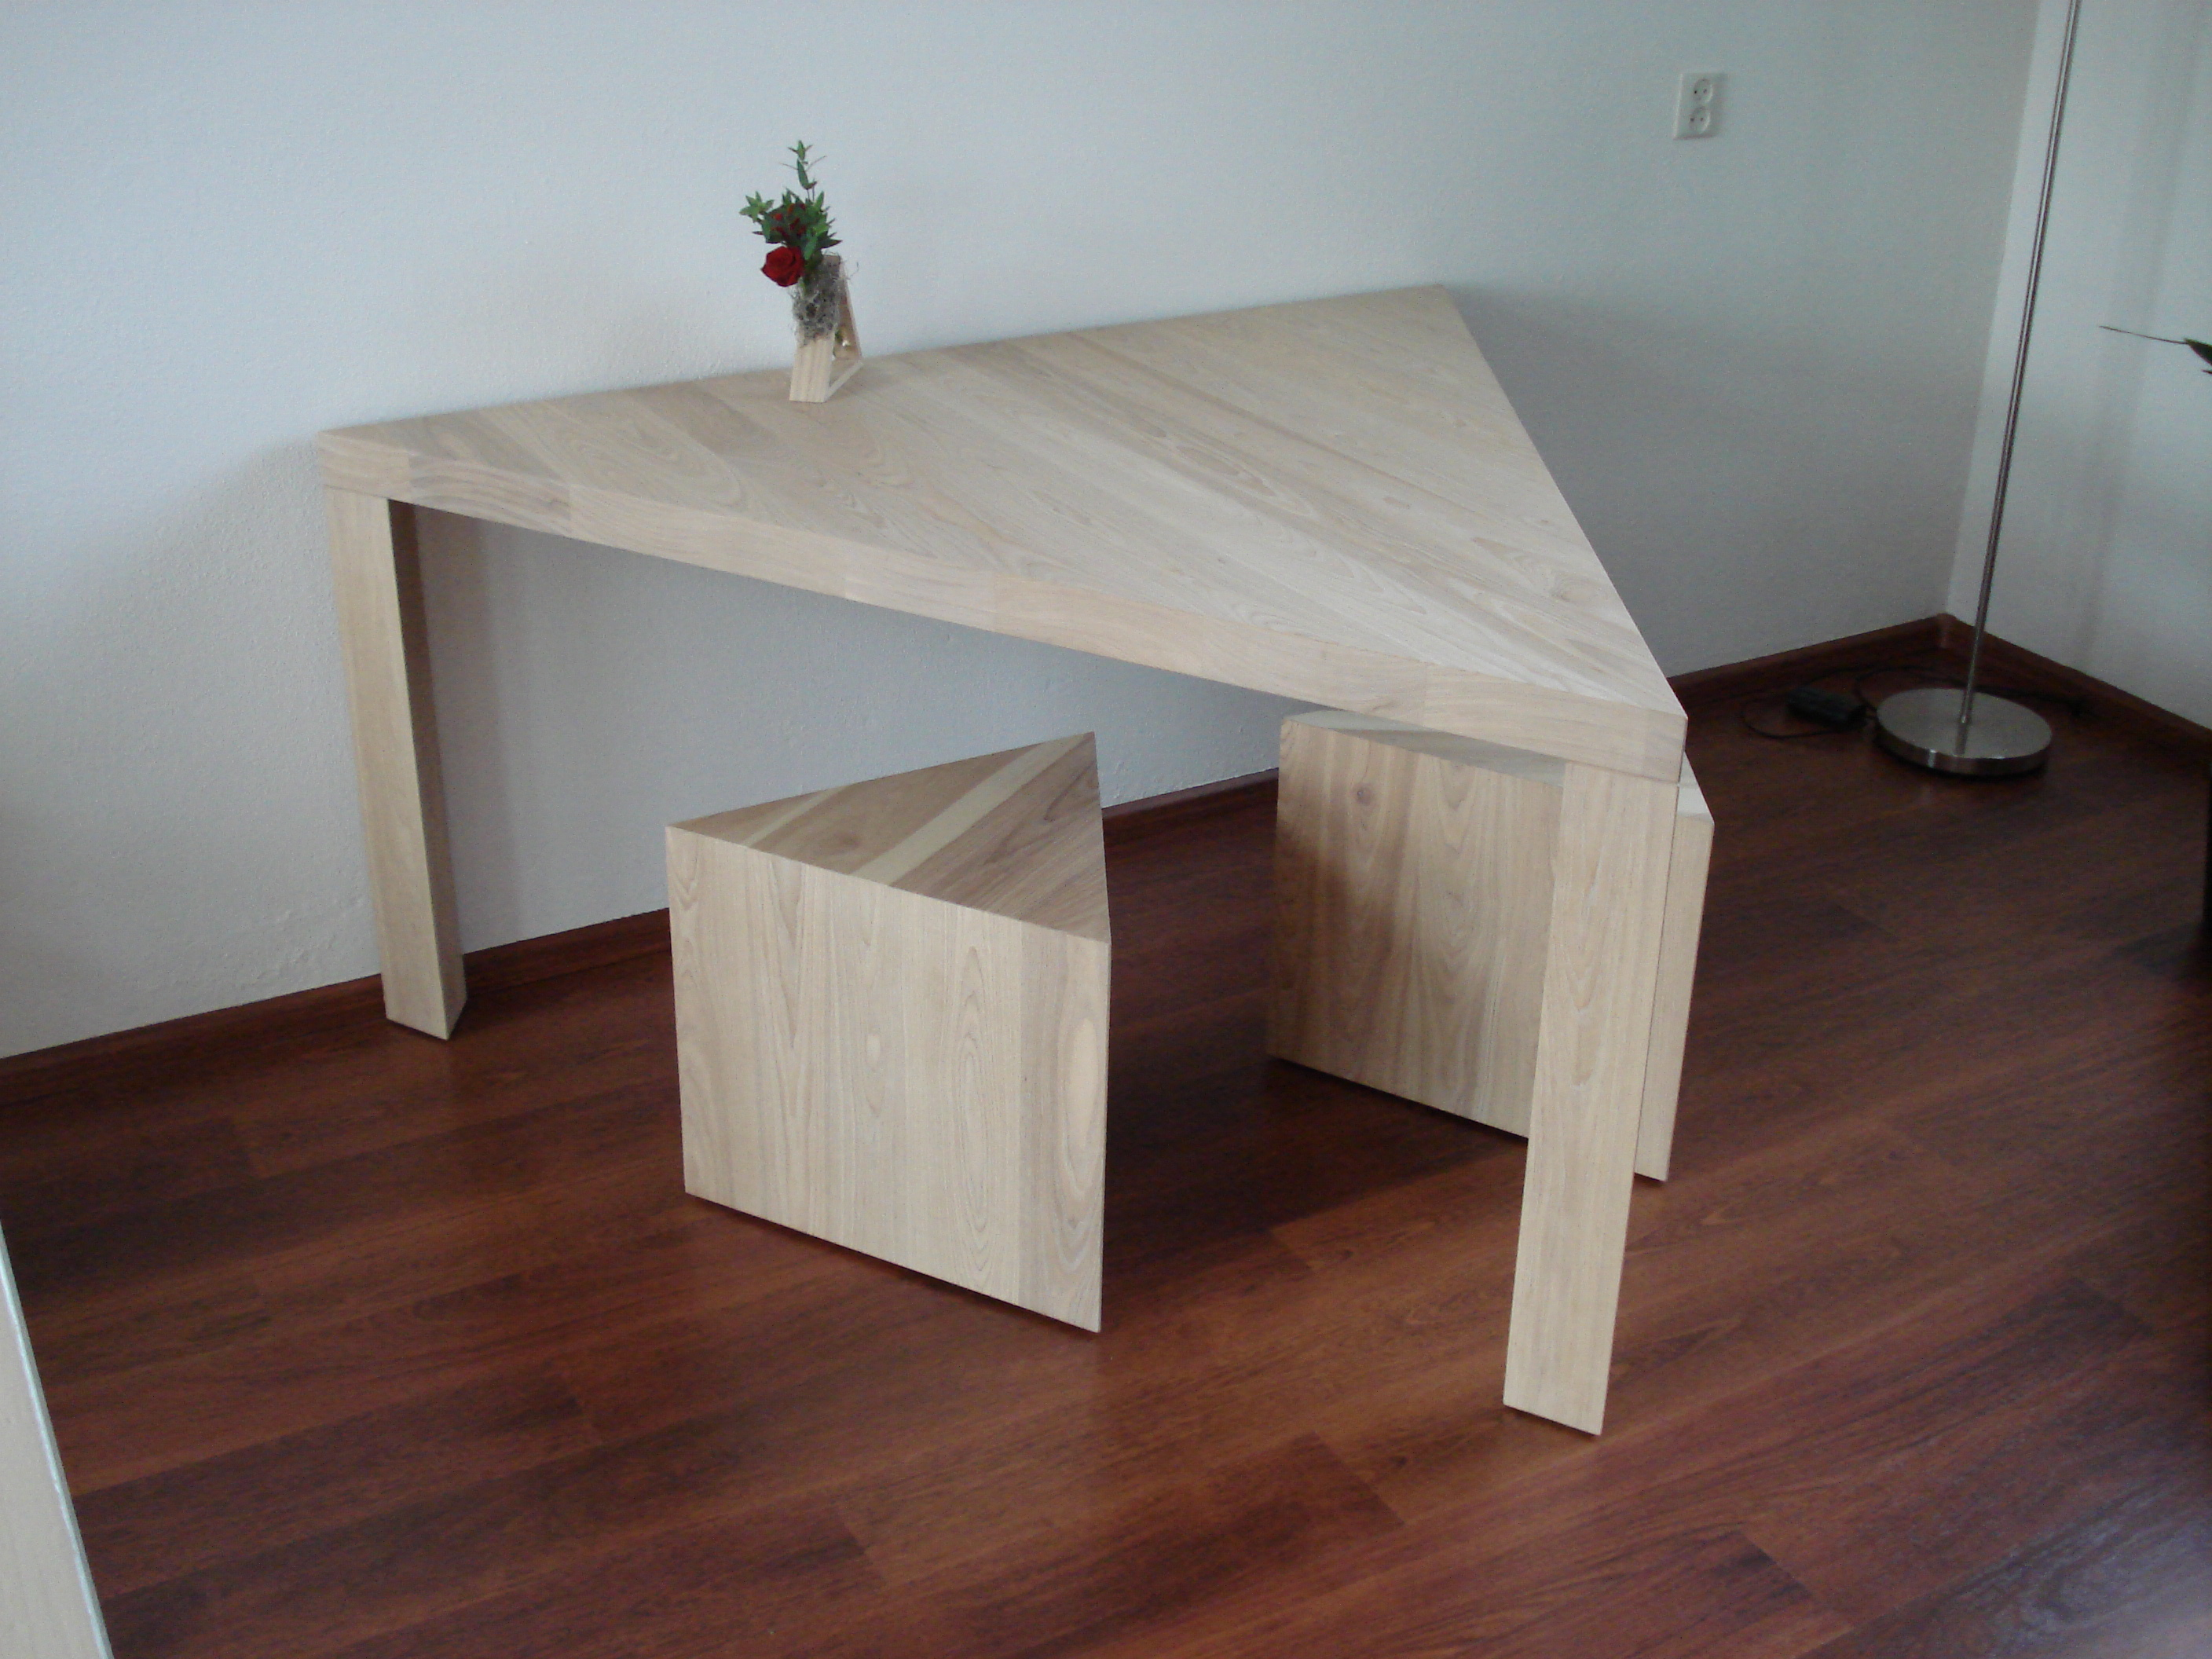 Wood Eettafel Eettafelset Driehoek | Woodtob